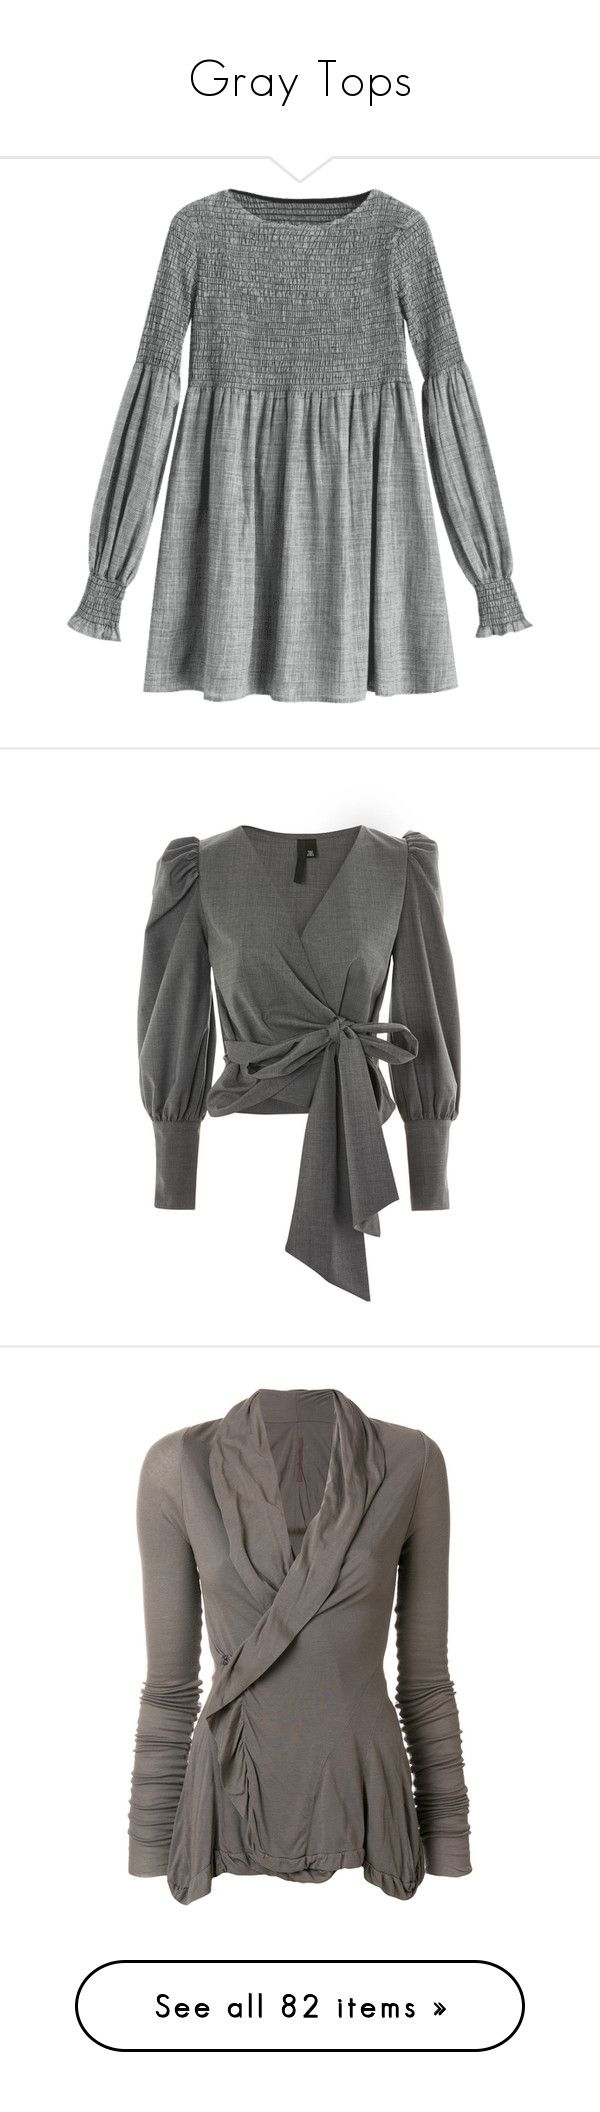 """Gray Tops"" by kikikoji ❤ liked on Polyvore featuring zaful, tops, blouses, topshop, grey, topshop blouses, long sleeve wrap blouse, wool top, topshop tops and long sleeve blouse"